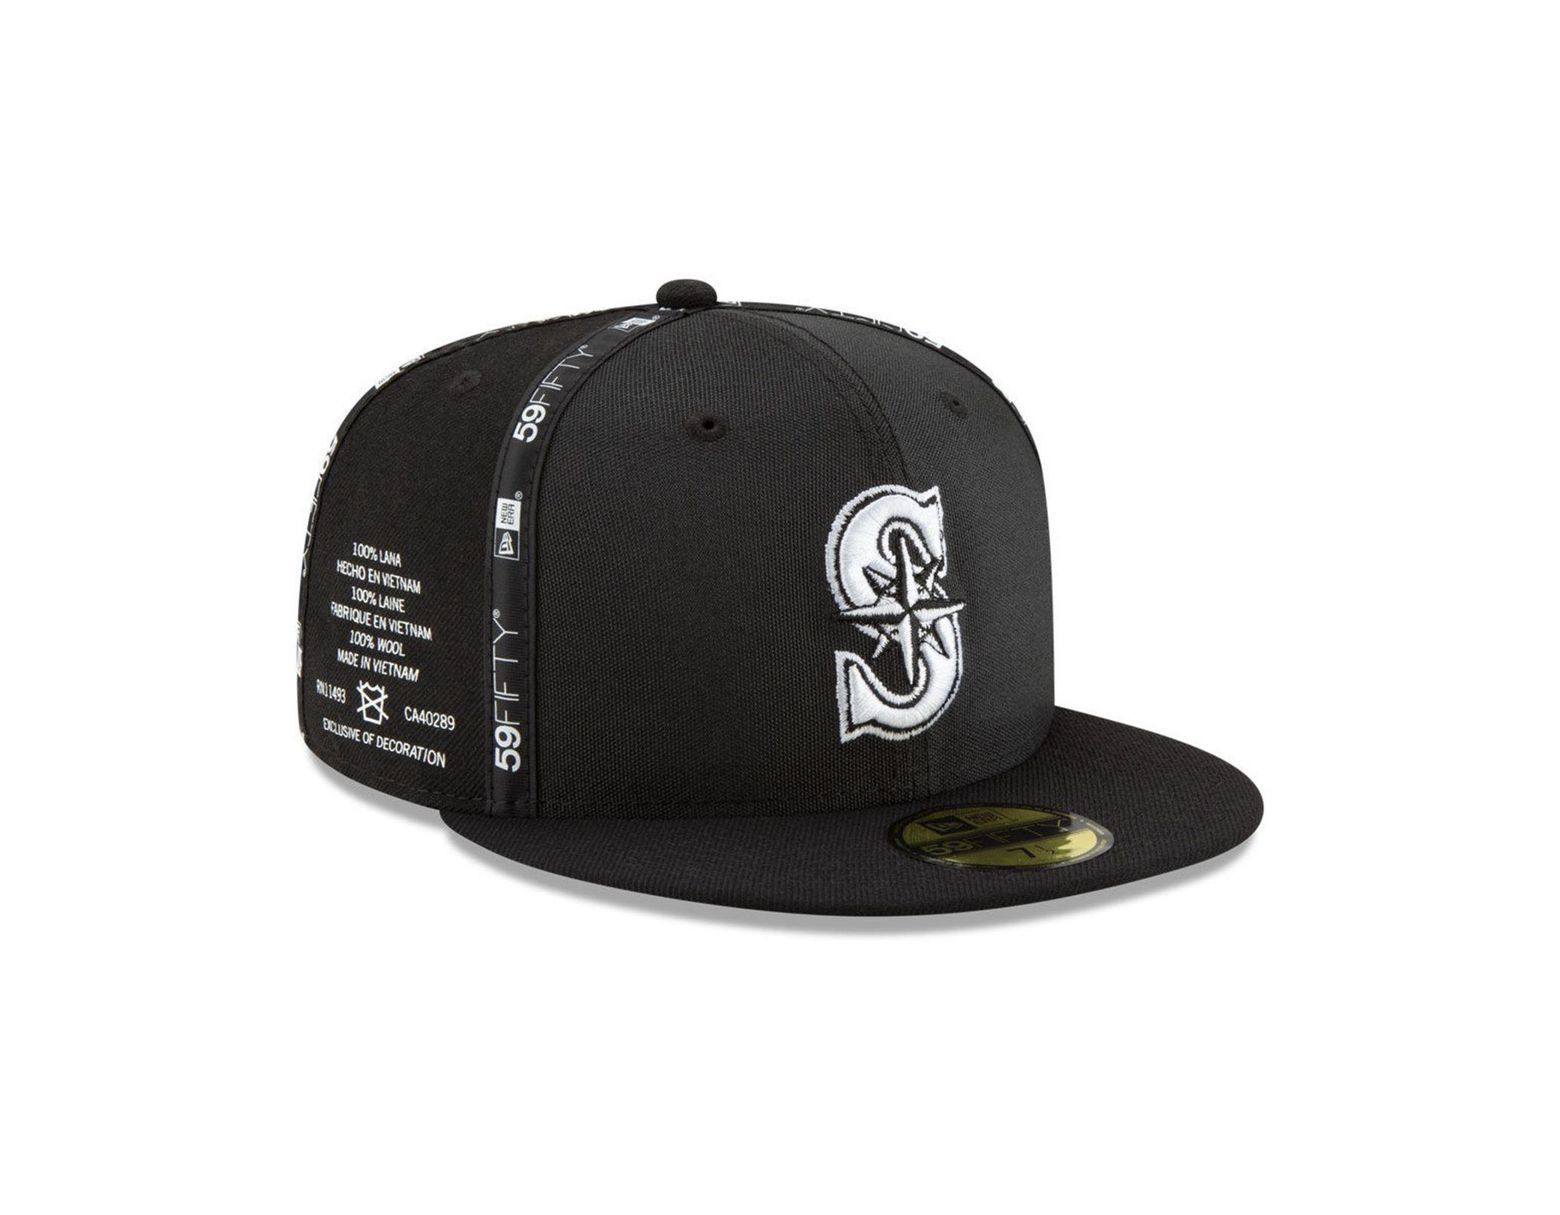 release date 7d61c 9a45d KTZ Seattle Mariners Inside Out 59fifty-fitted Cap in Black for Men - Lyst